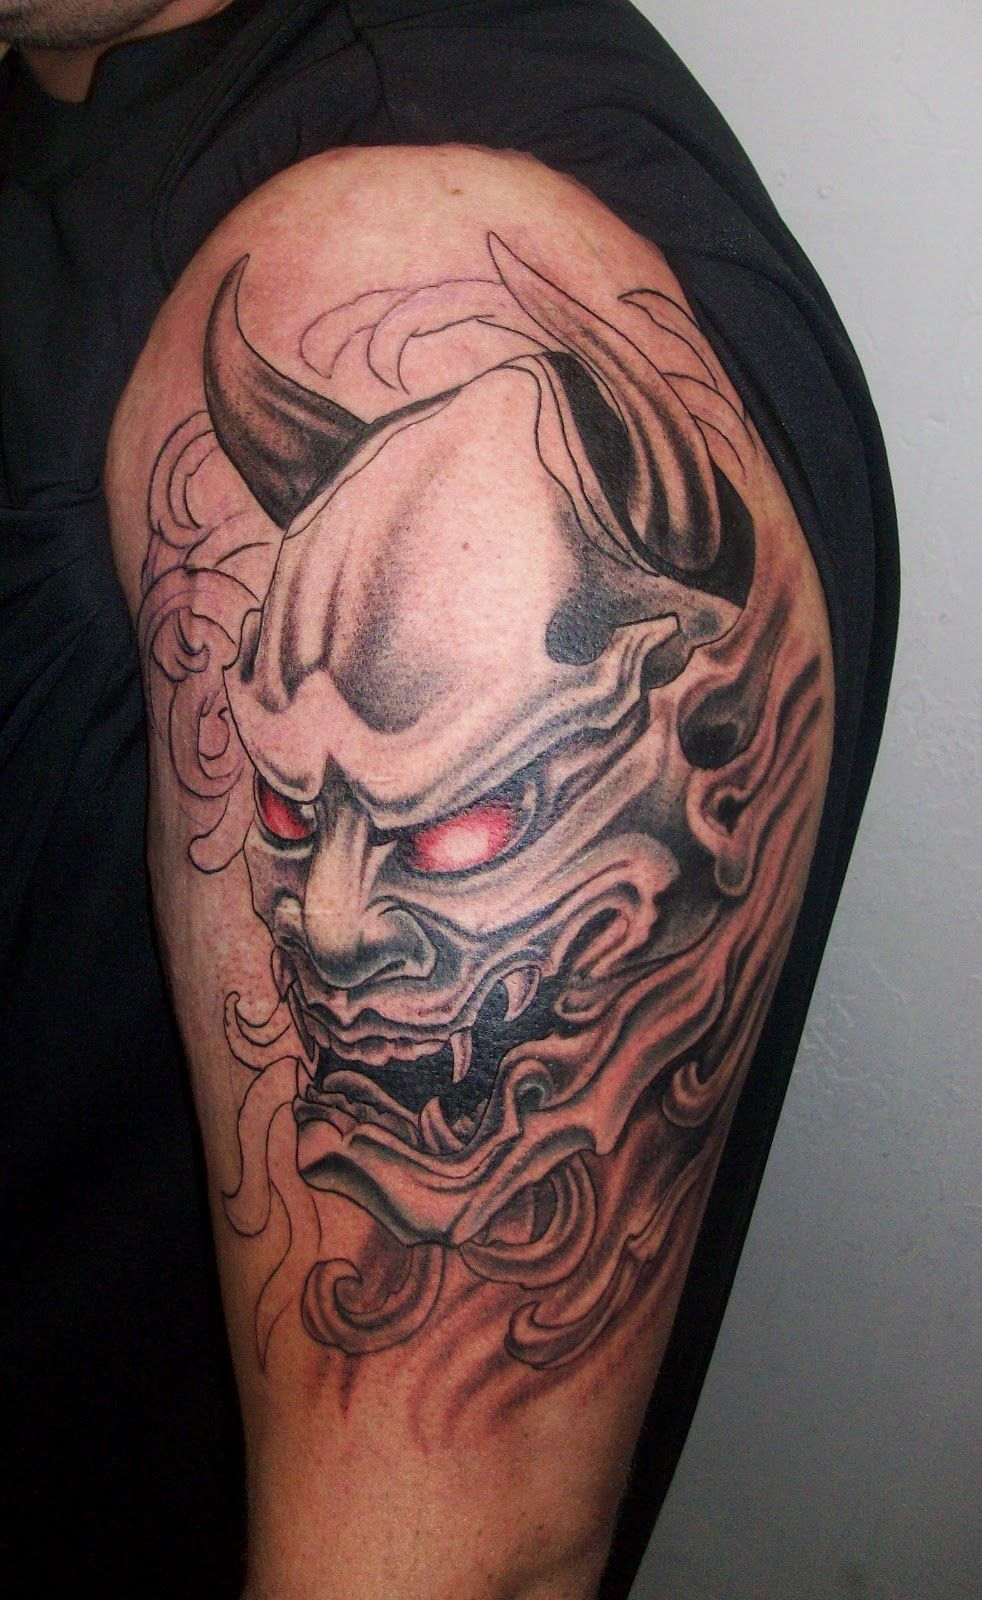 Japanese samurai mask tattoos tattoo ideas pinterest for Japanese sleeve tattoos meanings